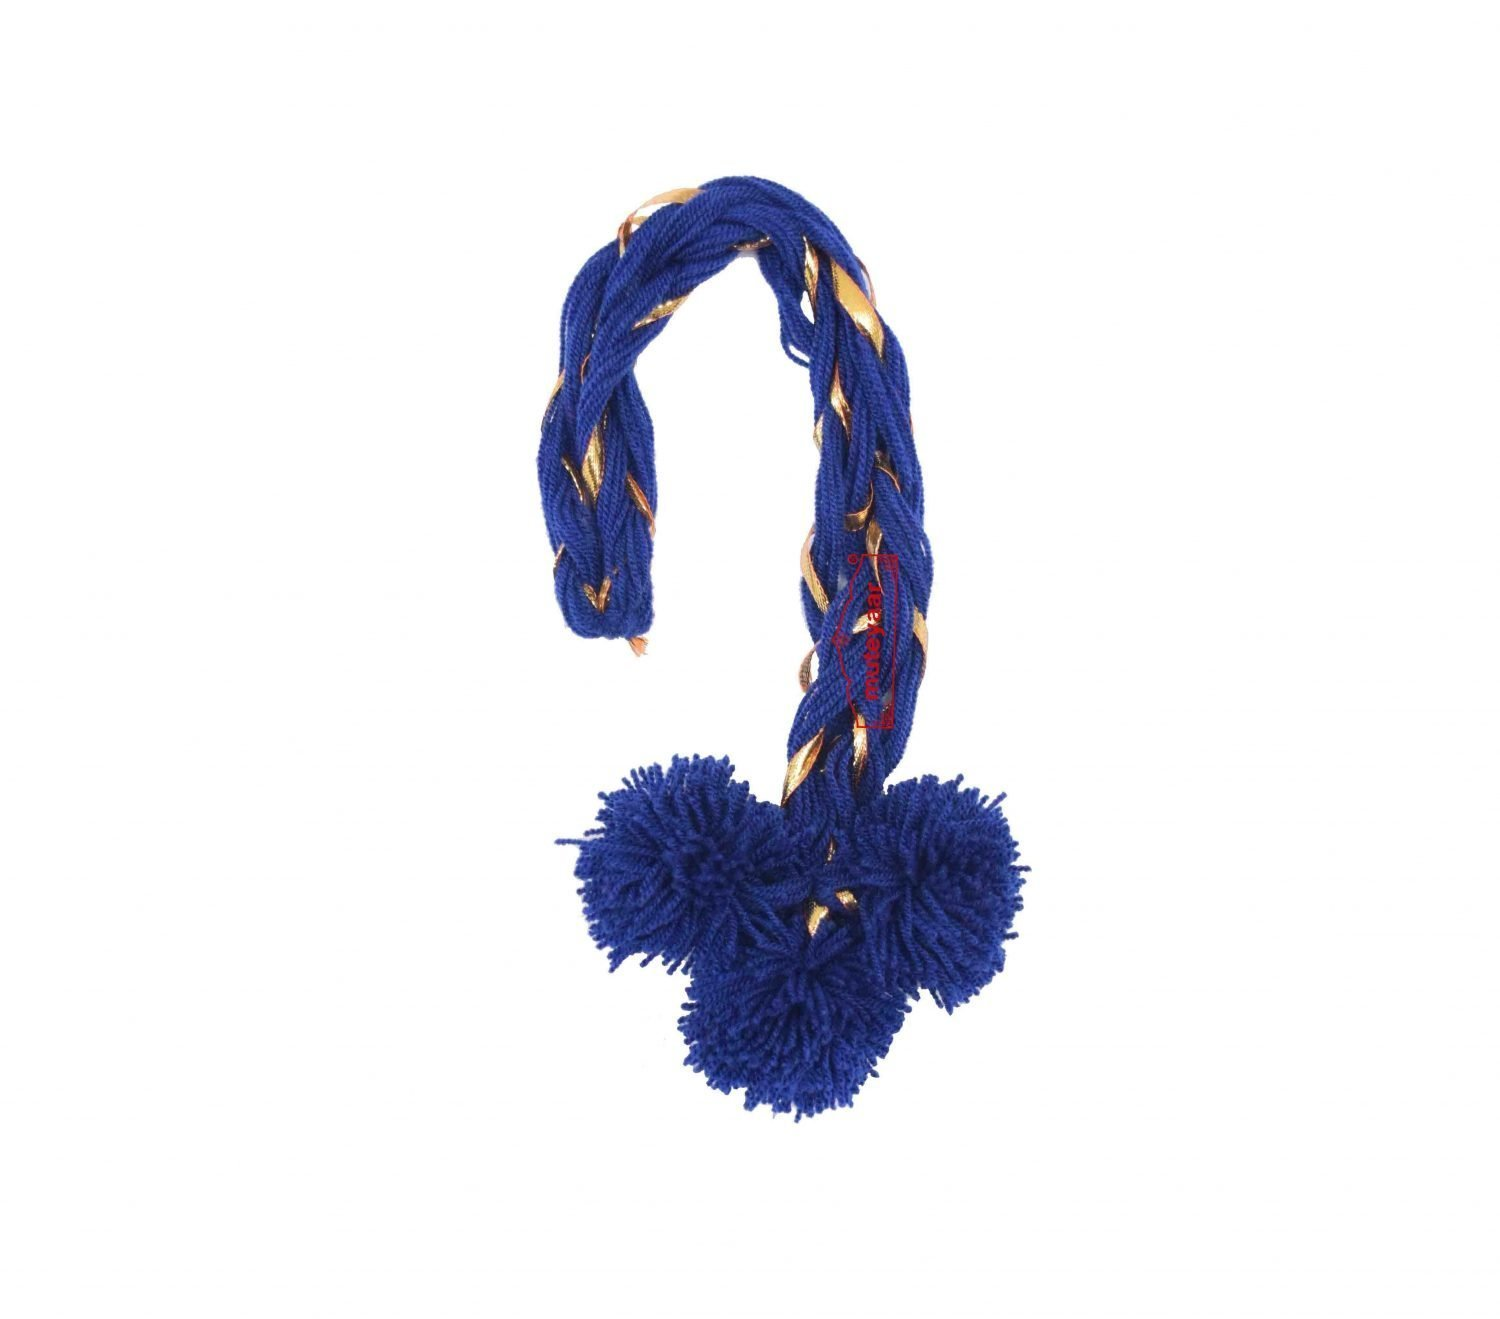 Laddoo Paranda Pompom Luddi Tassles - All Colours Available 1